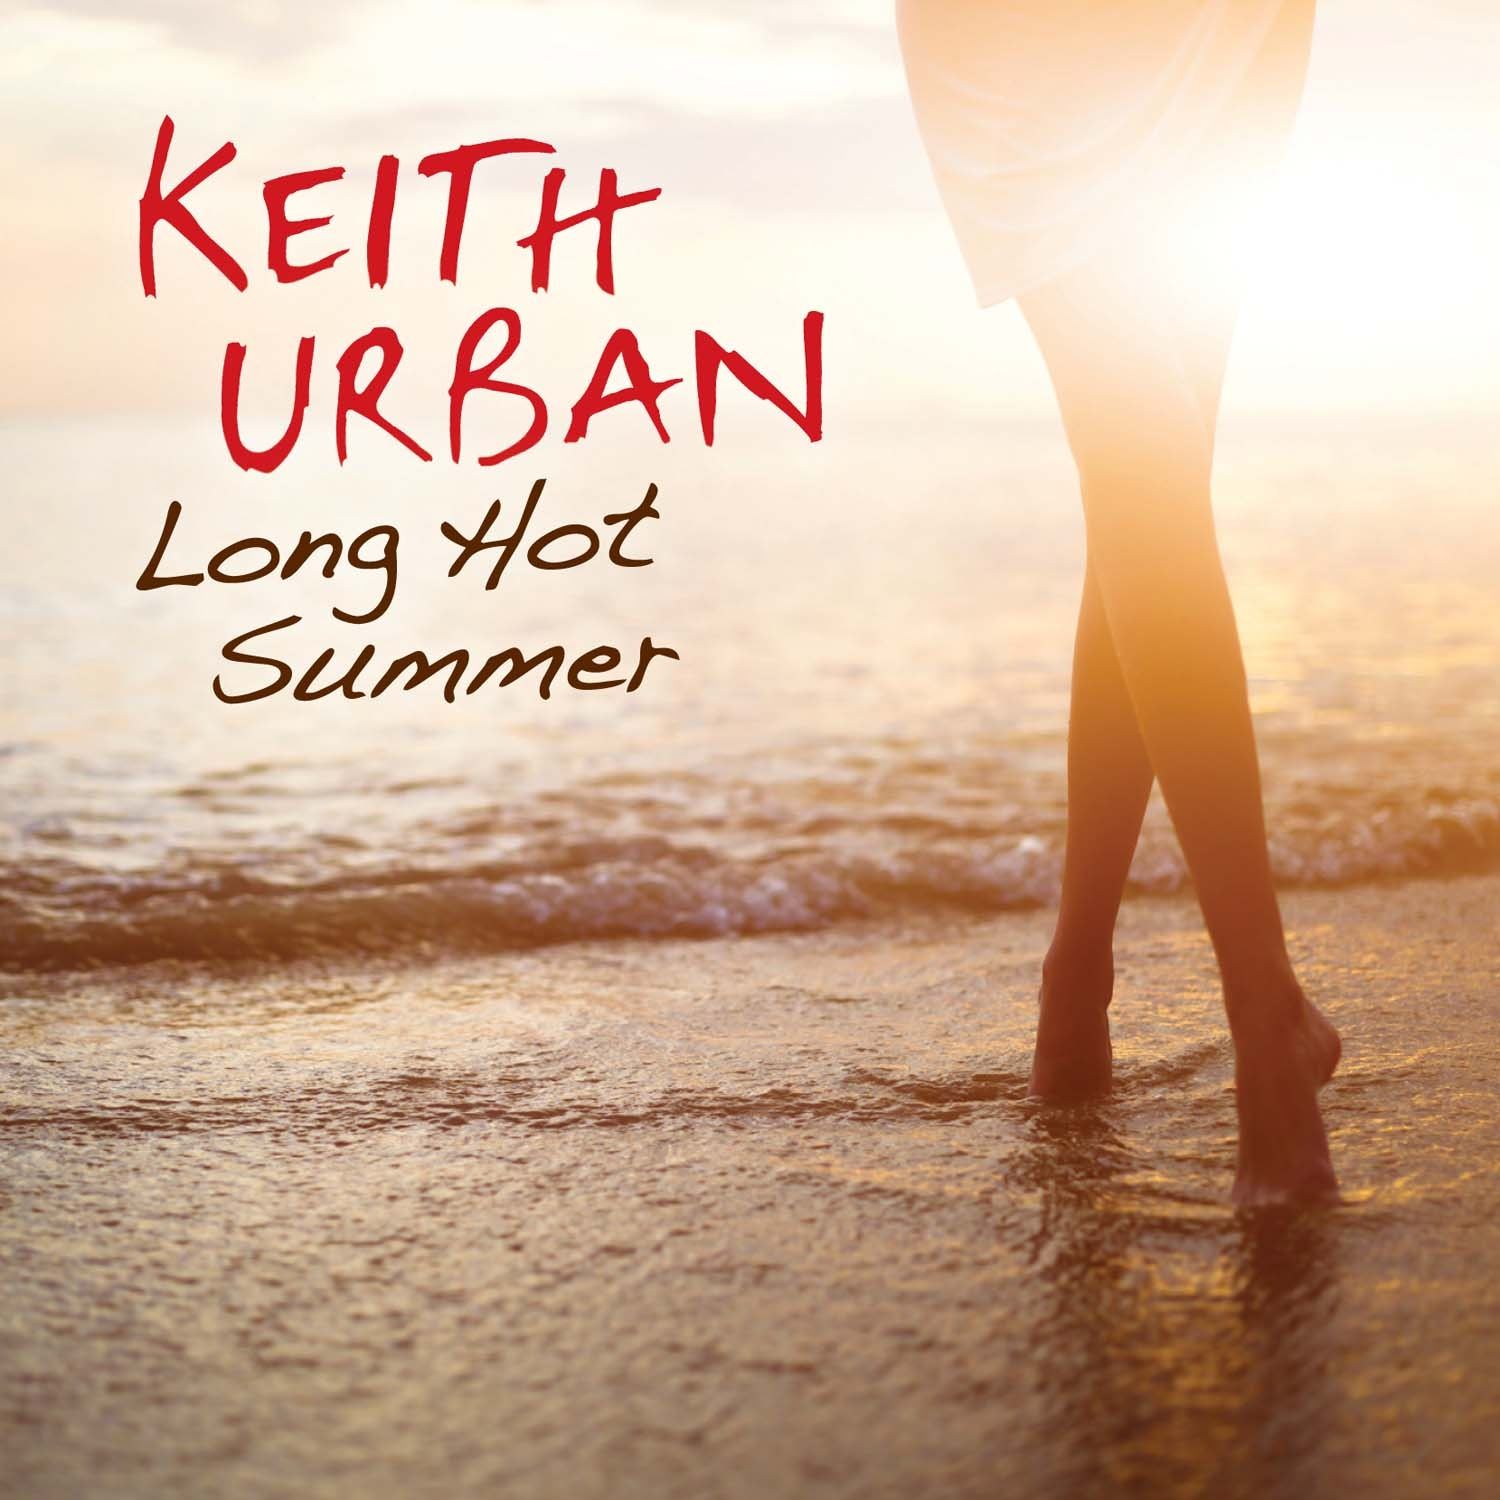 Long hot summer keith urban lyrics